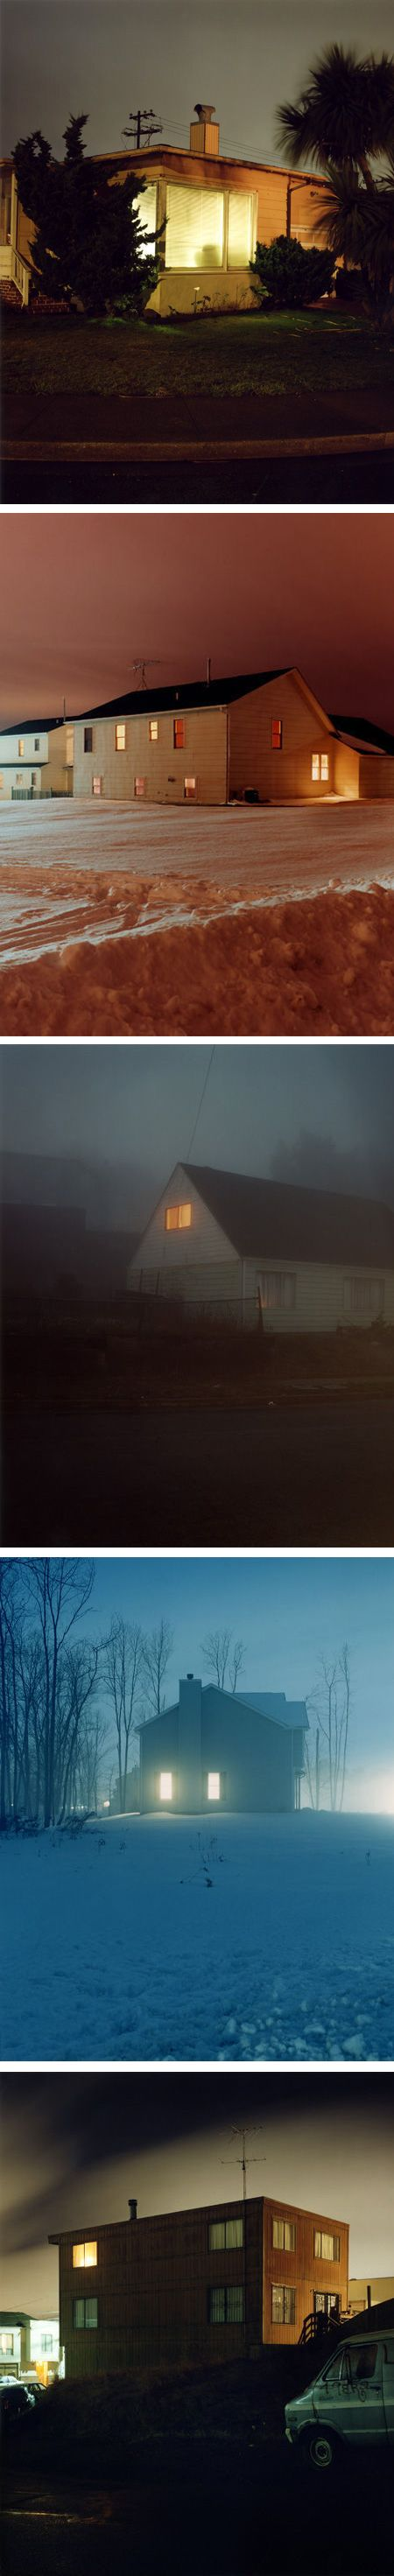 Todd Hido - I have considered doing a project like this, not because I like looking in people's windows, but because I love the way light looks through windows at night!